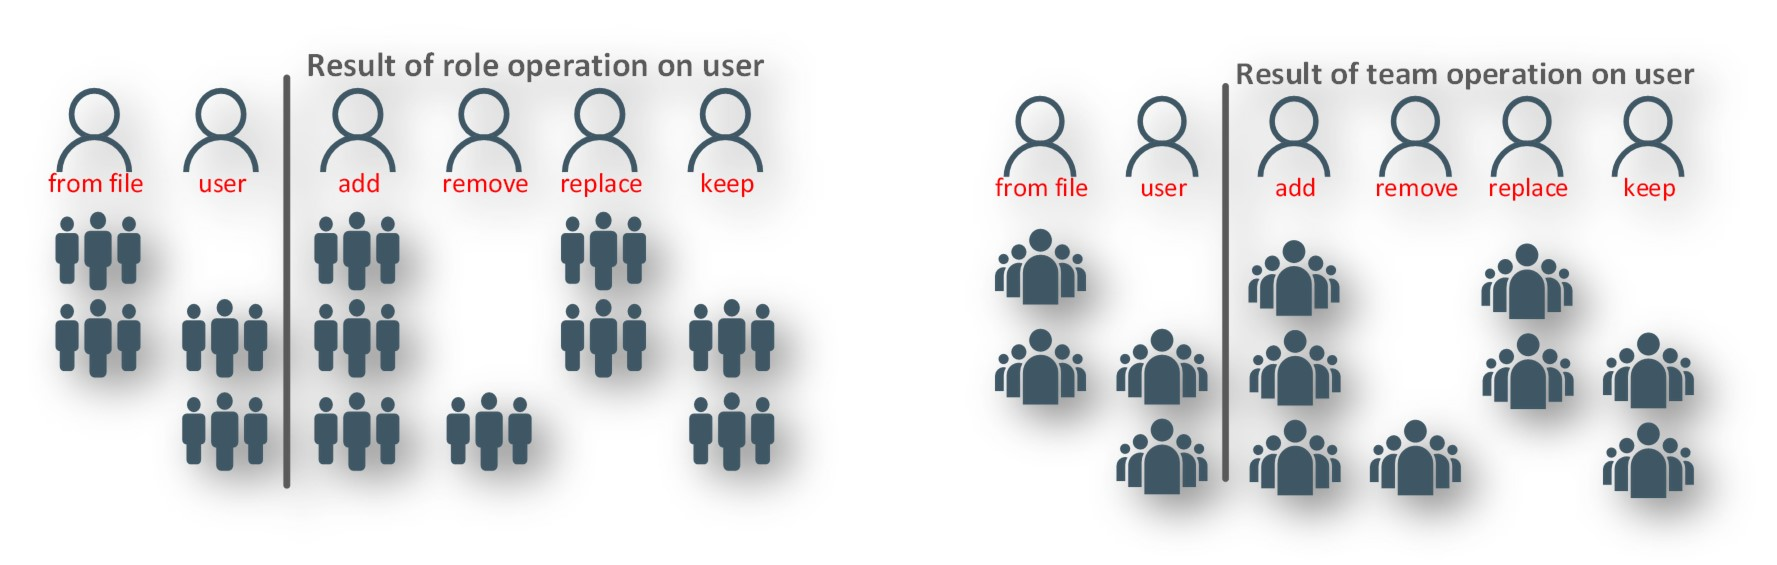 creating%20or%20updating%20a%20user%20actions%20on%20teams%20and%20roles